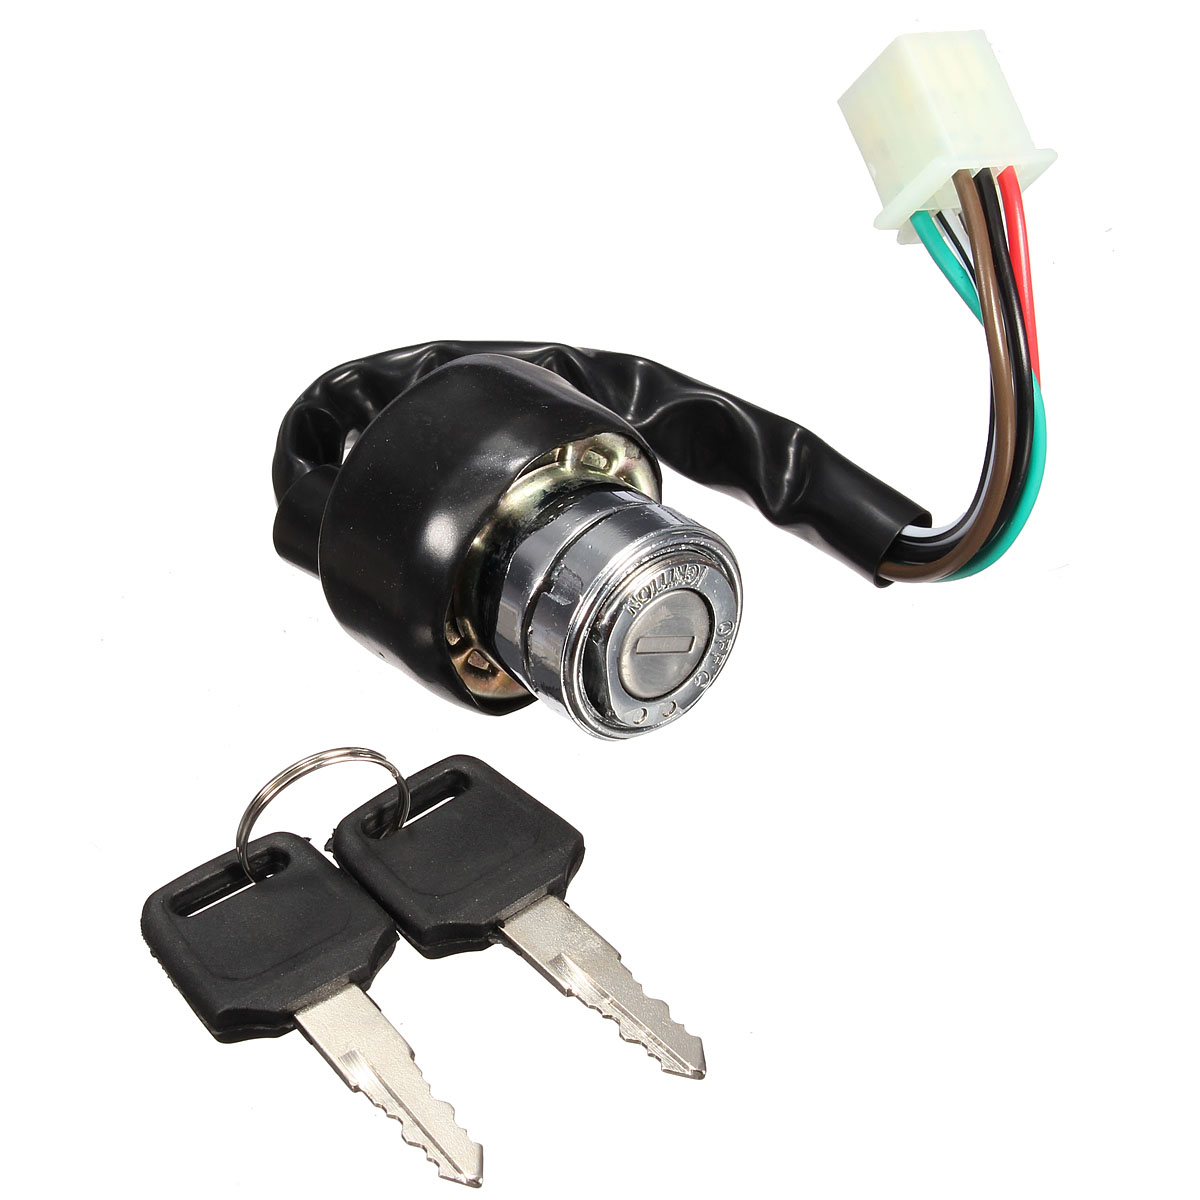 hight resolution of atv ignition switch wiring atv free engine image for 5 prong ignition switch diagram 5 prong ignition switch diagram